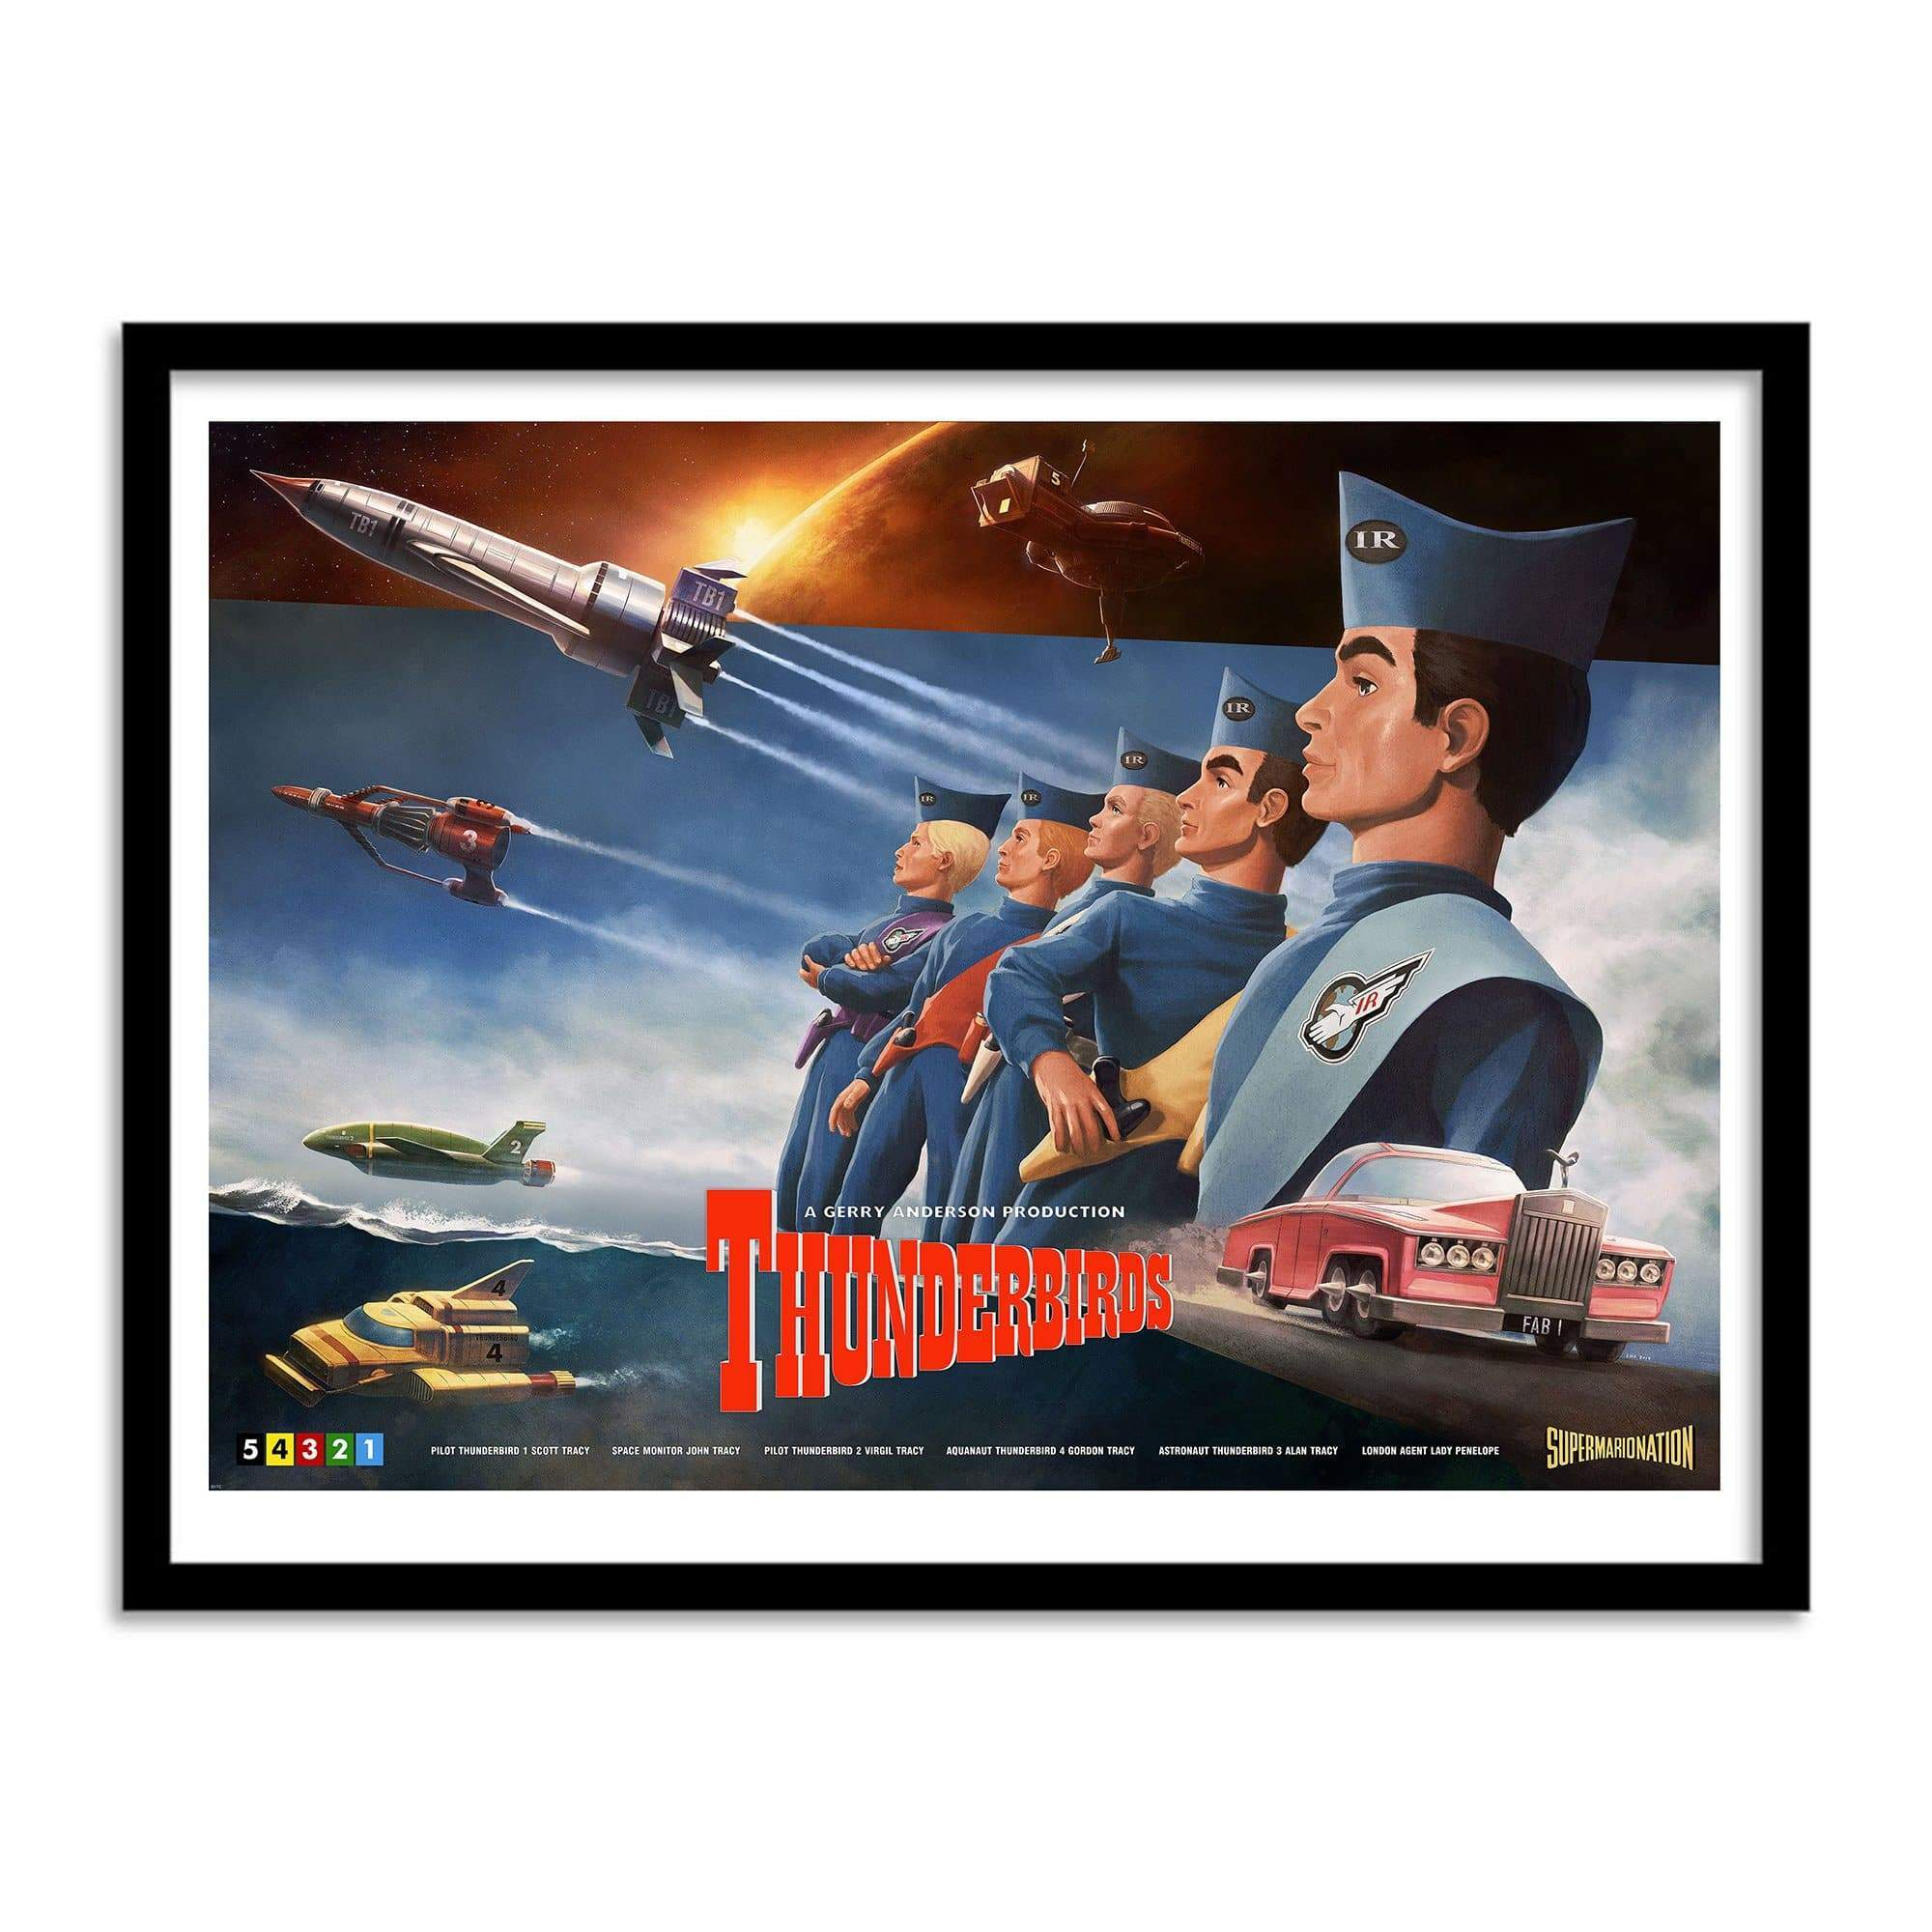 Thunderbirds Print by Henrik Sahlstrom - The Gerry Anderson Store